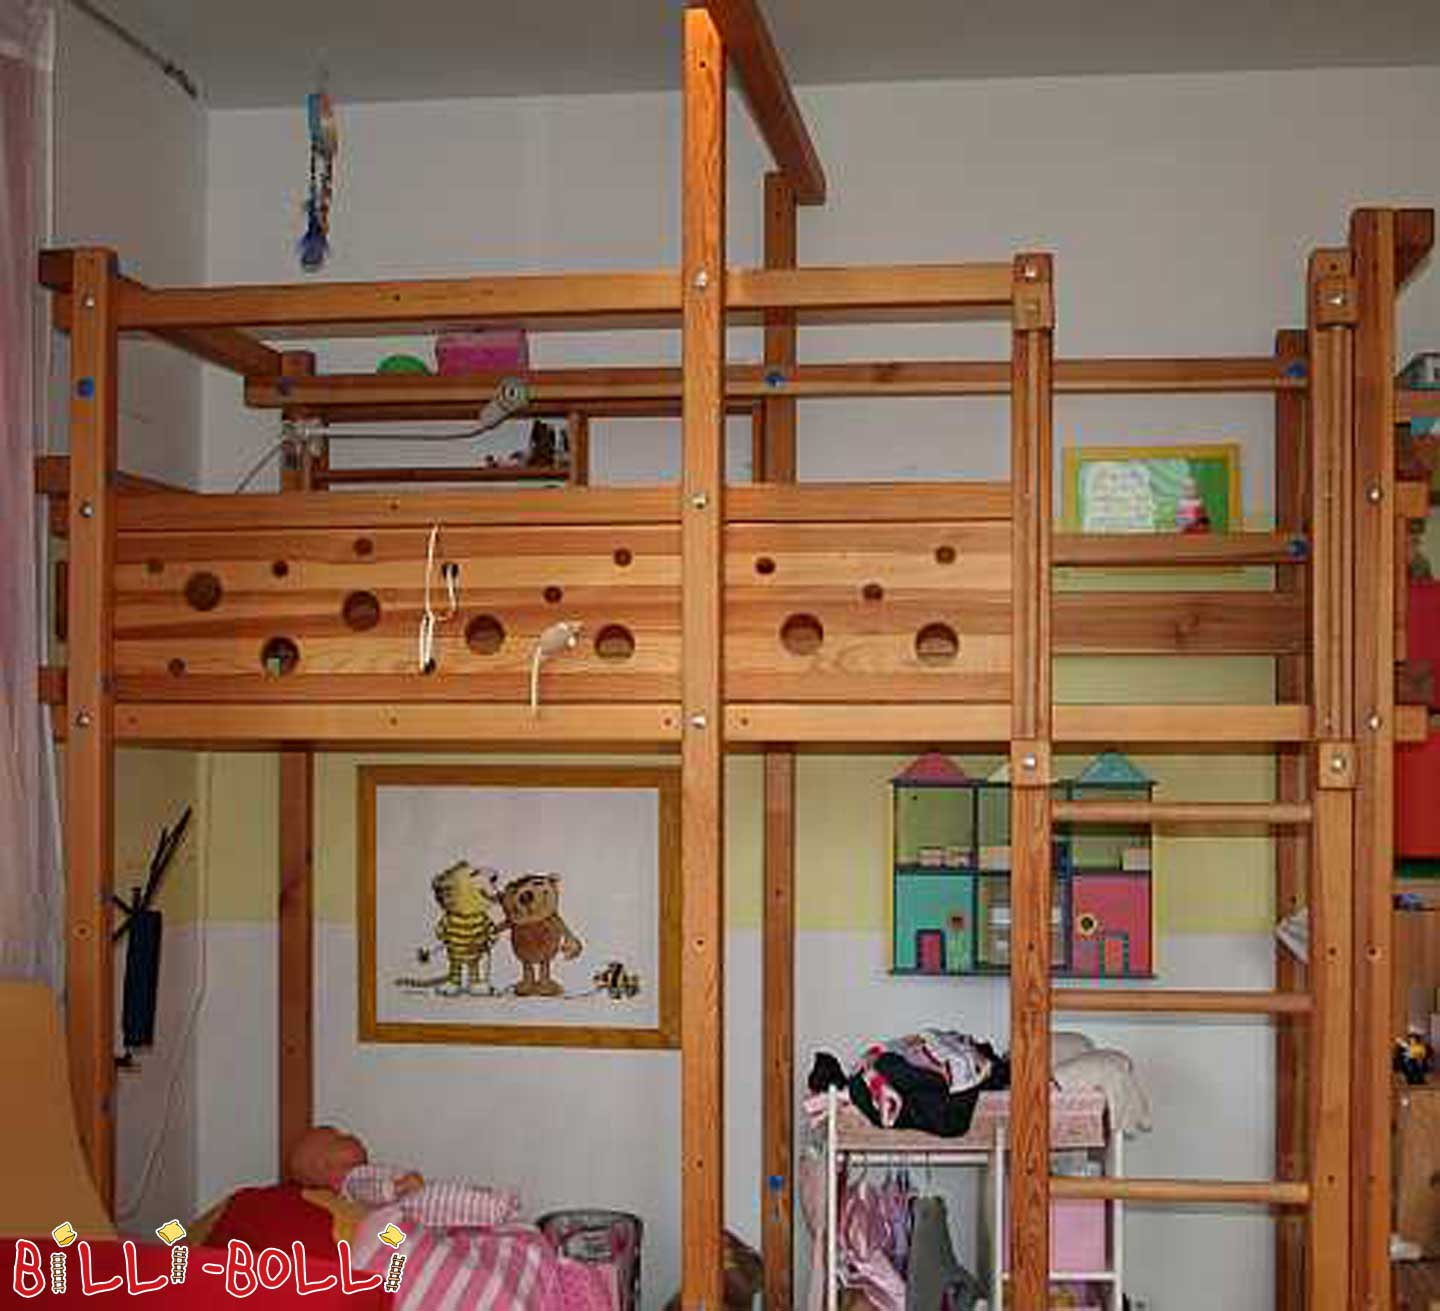 secondhand seite 81 billi bolli kinderm bel. Black Bedroom Furniture Sets. Home Design Ideas